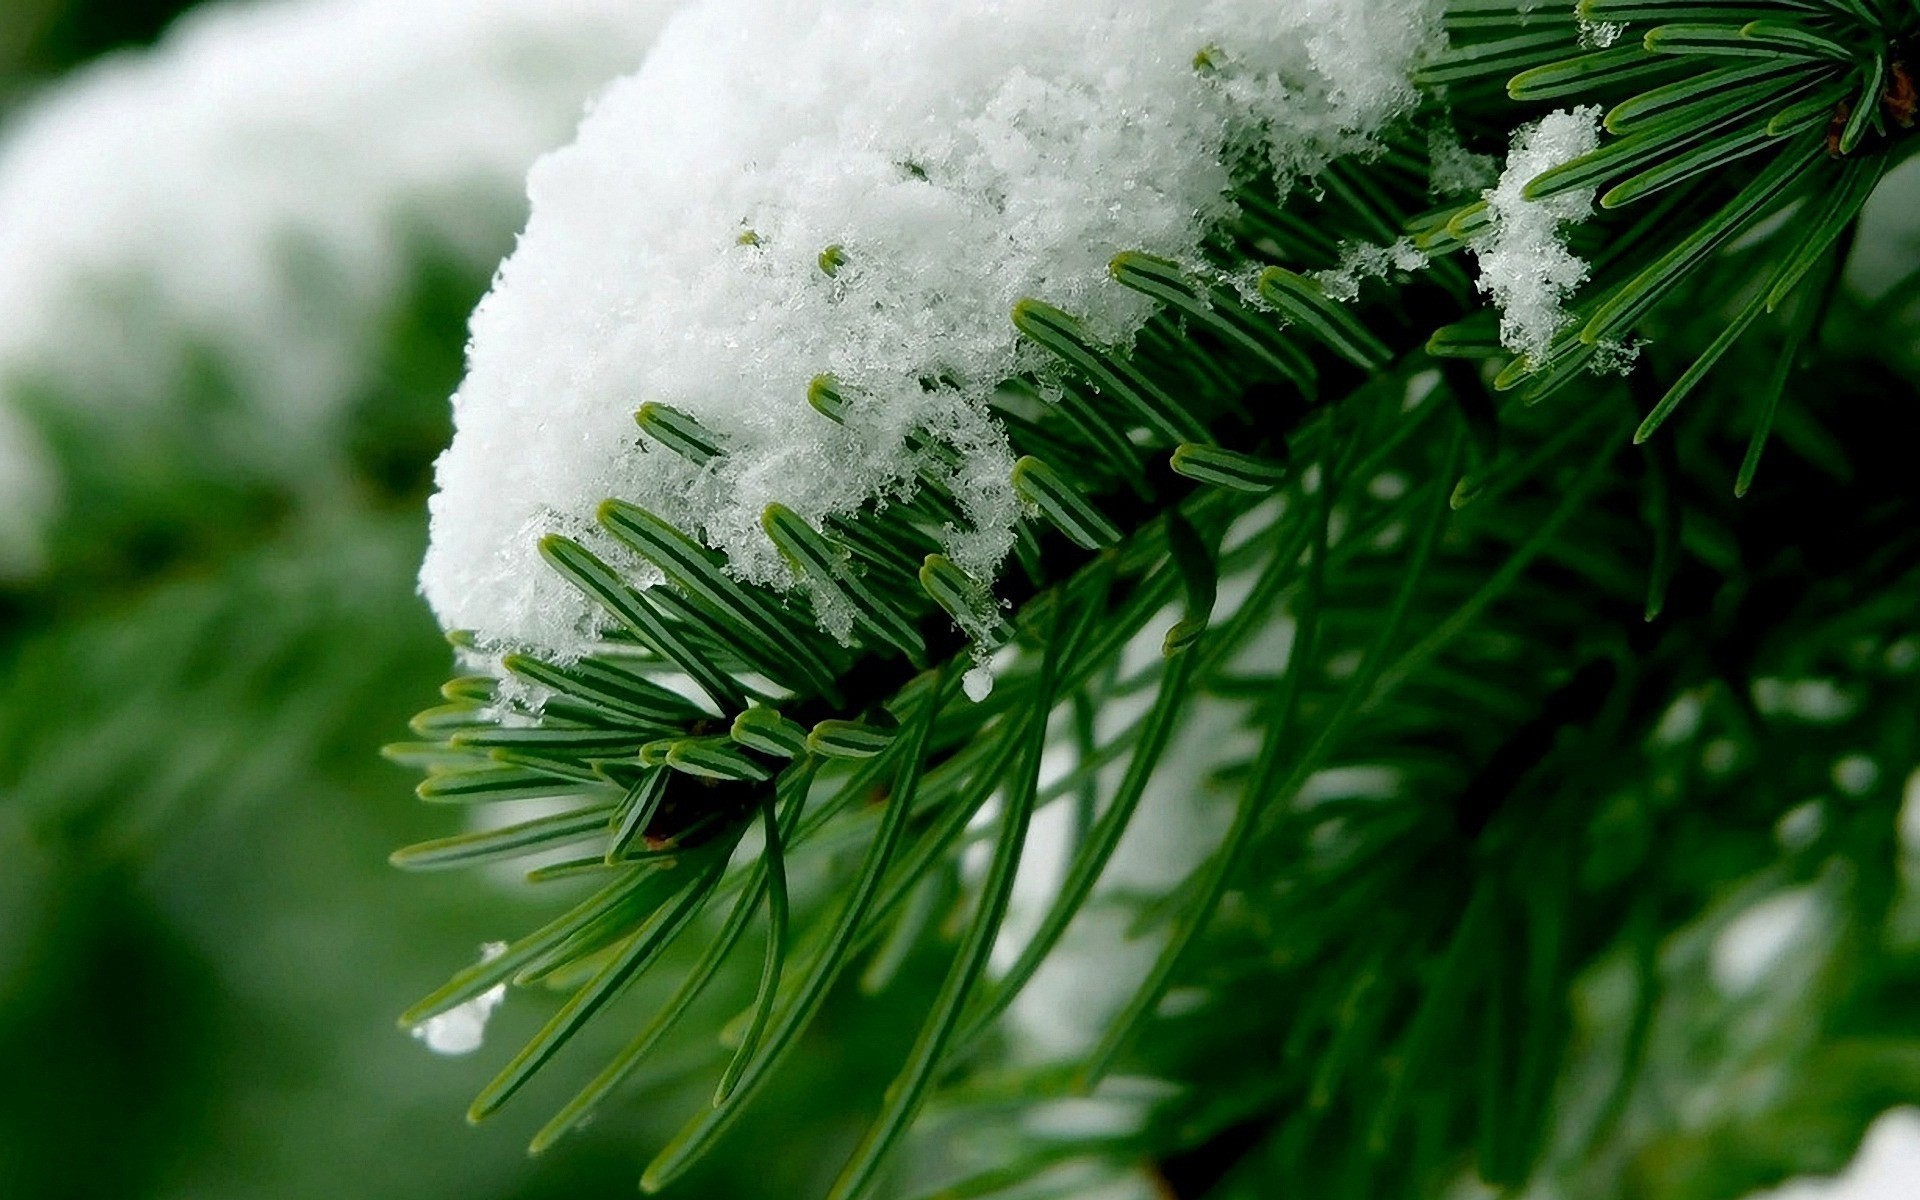 landscapes winter christmas tree evergreen blur celebration pine snow decoration conifer fir season nature leaf needle close-up branch light bright